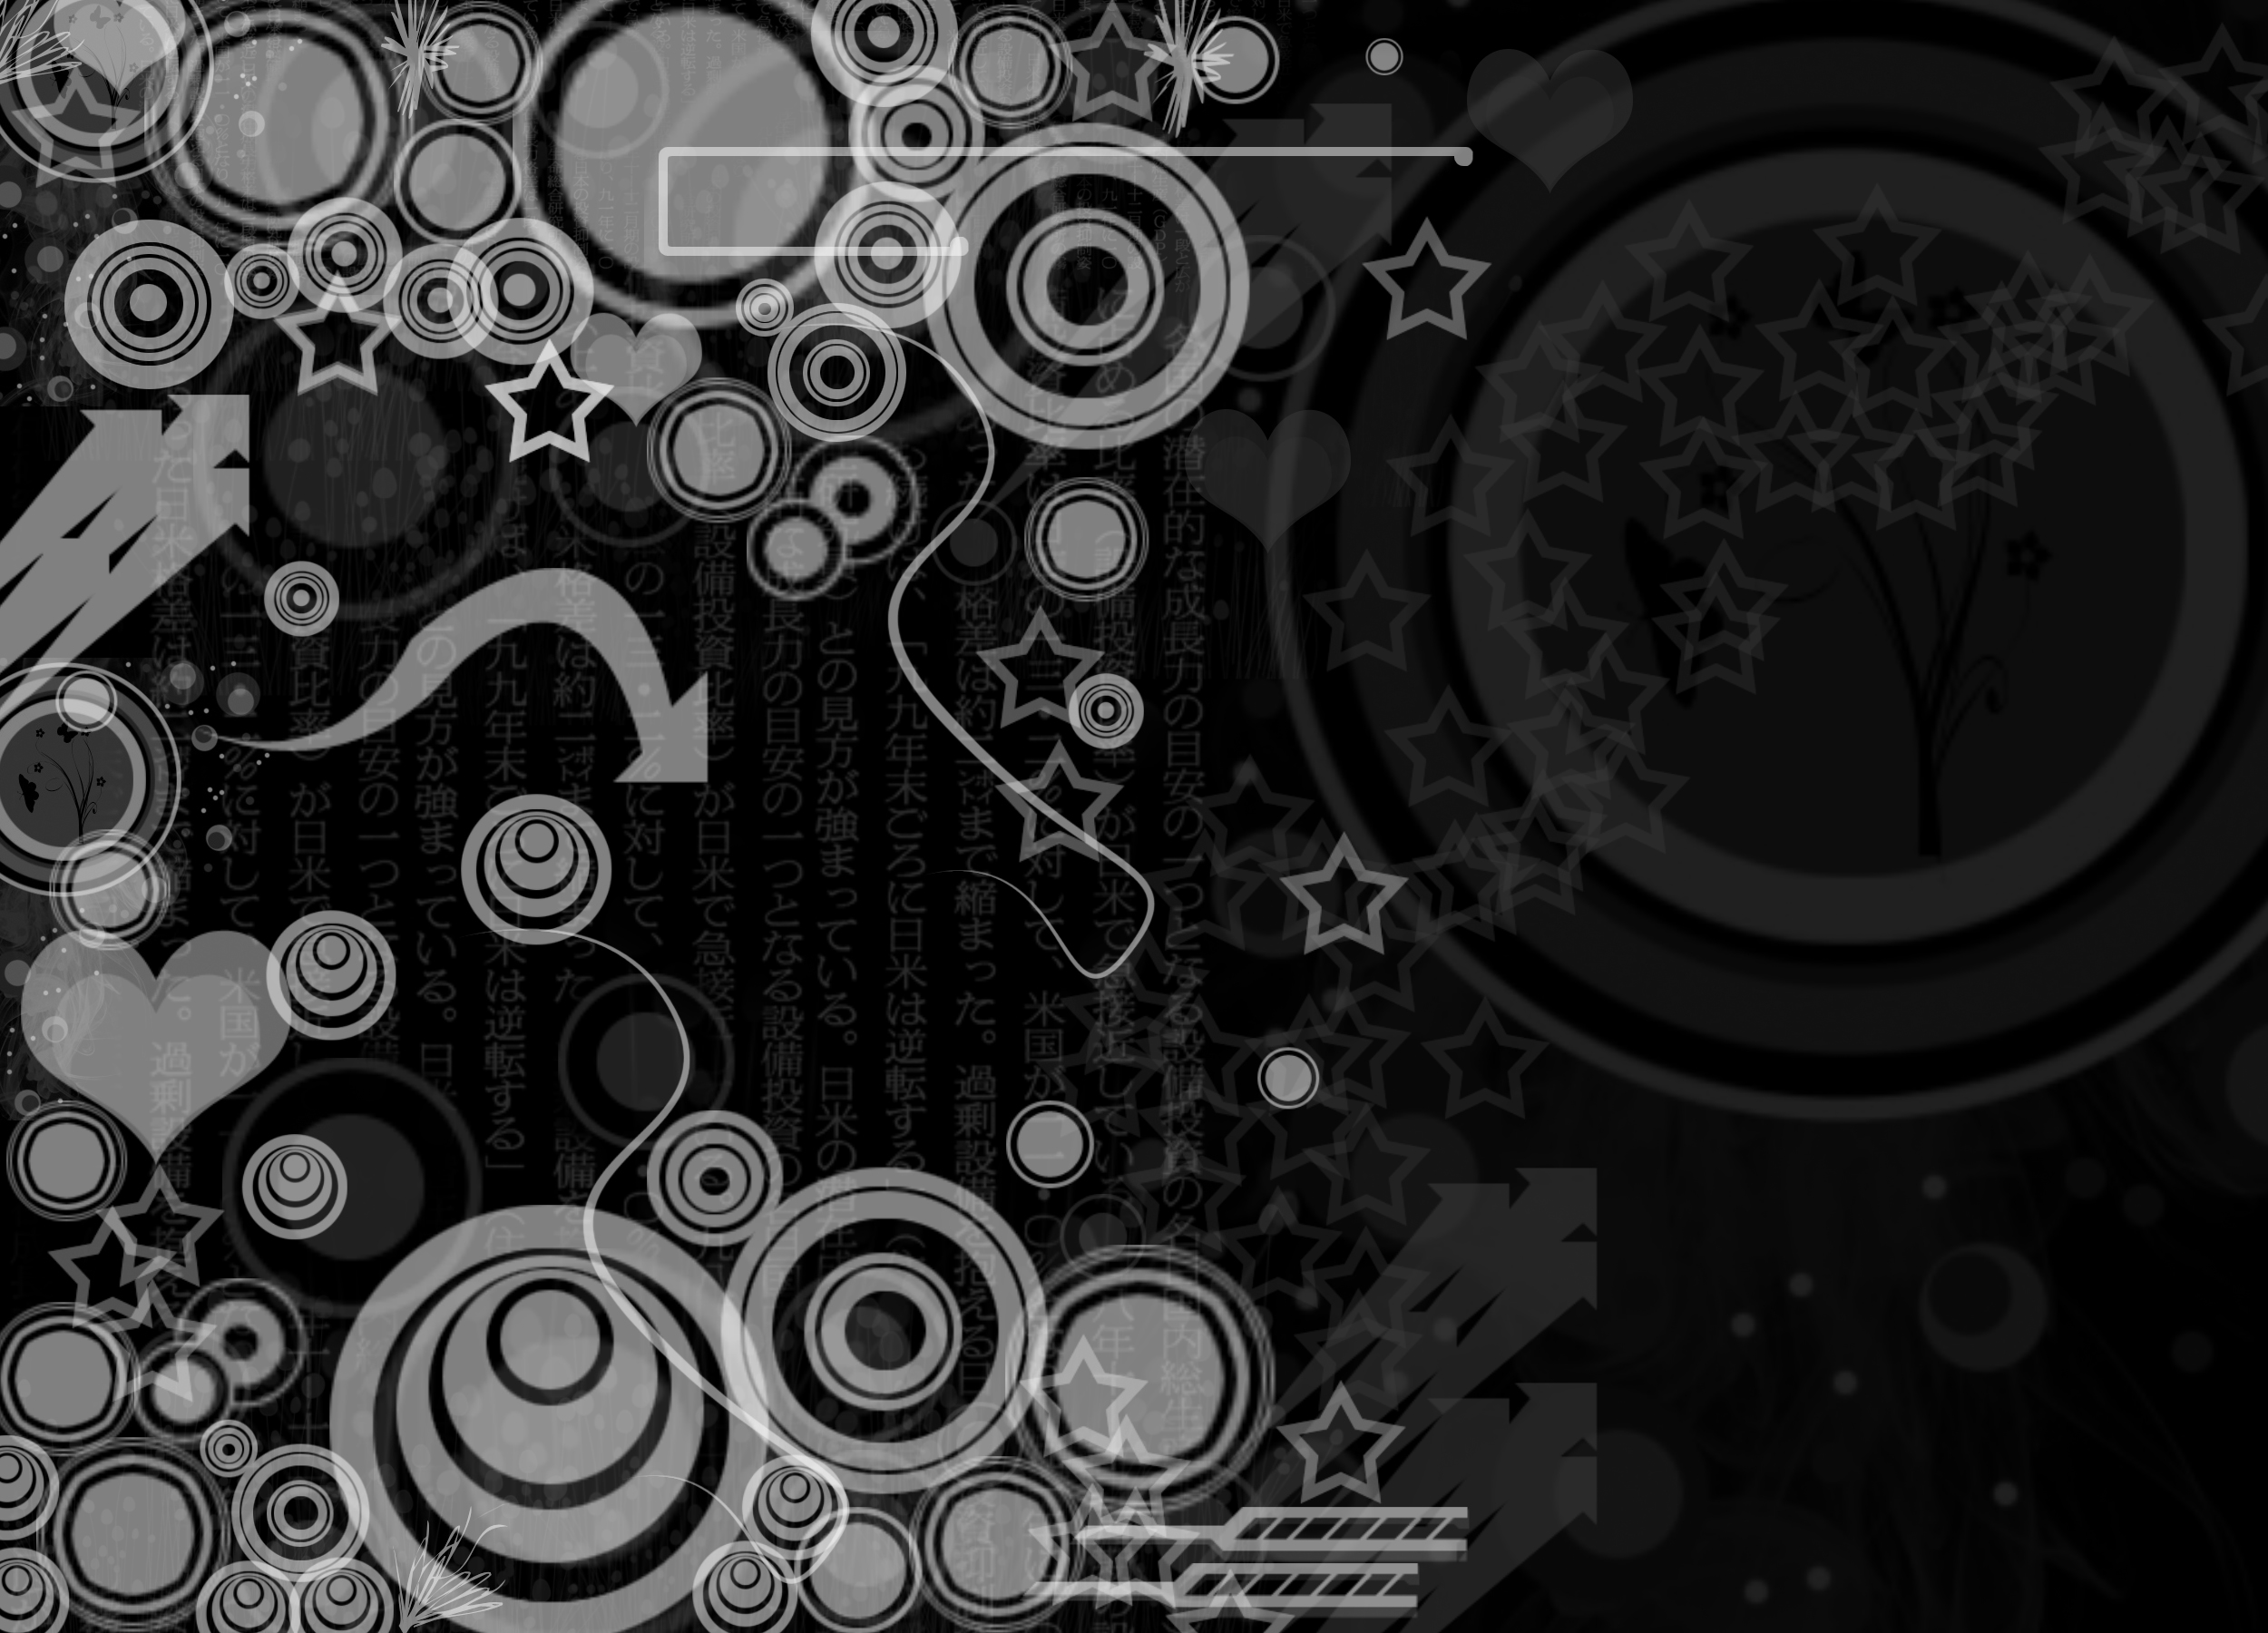 Cool Black and White Backgrounds